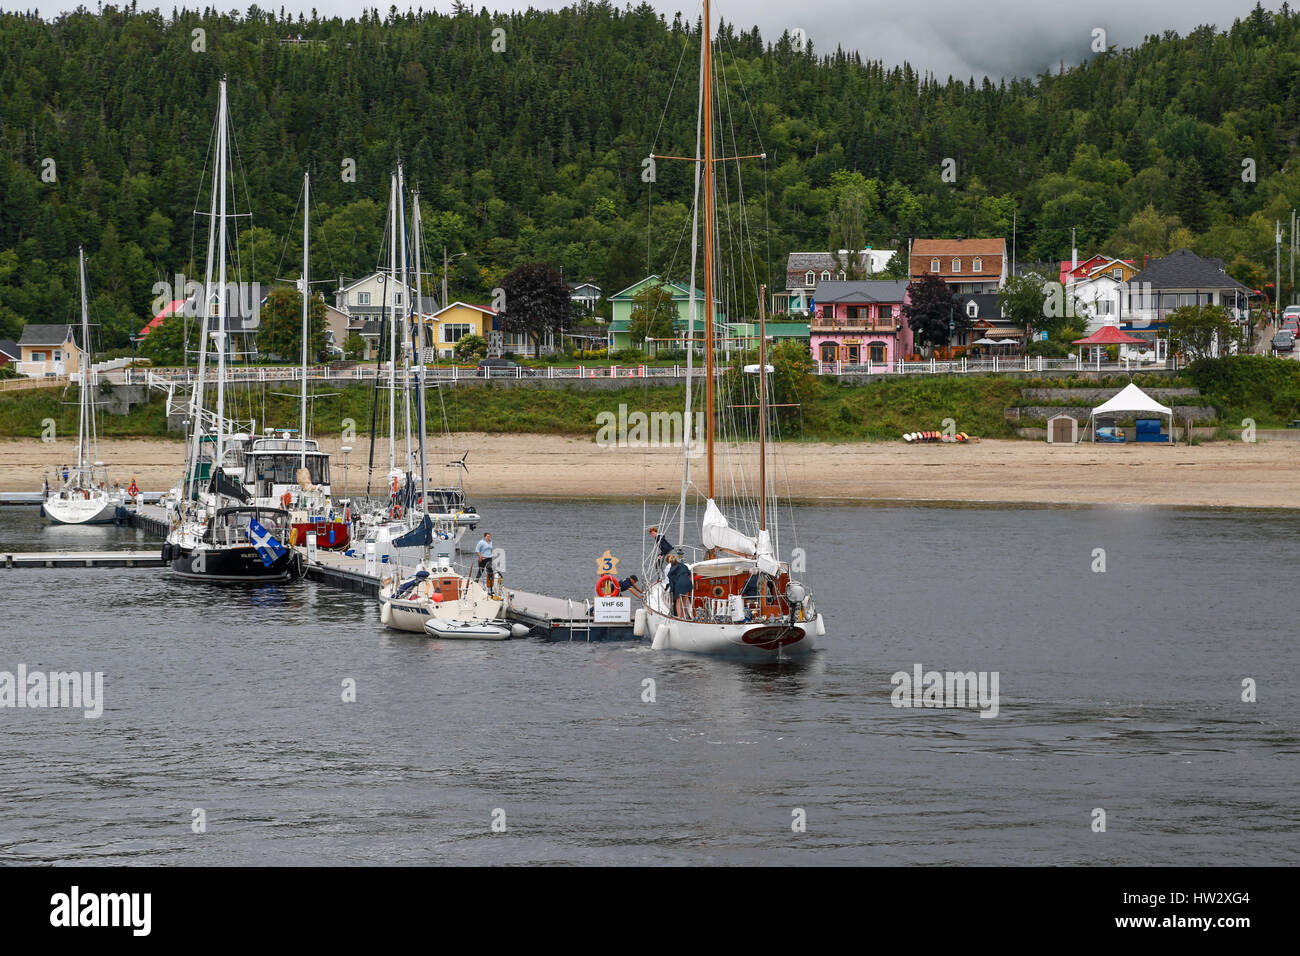 Sailing yachts on a float at Tadoussac - Stock Image